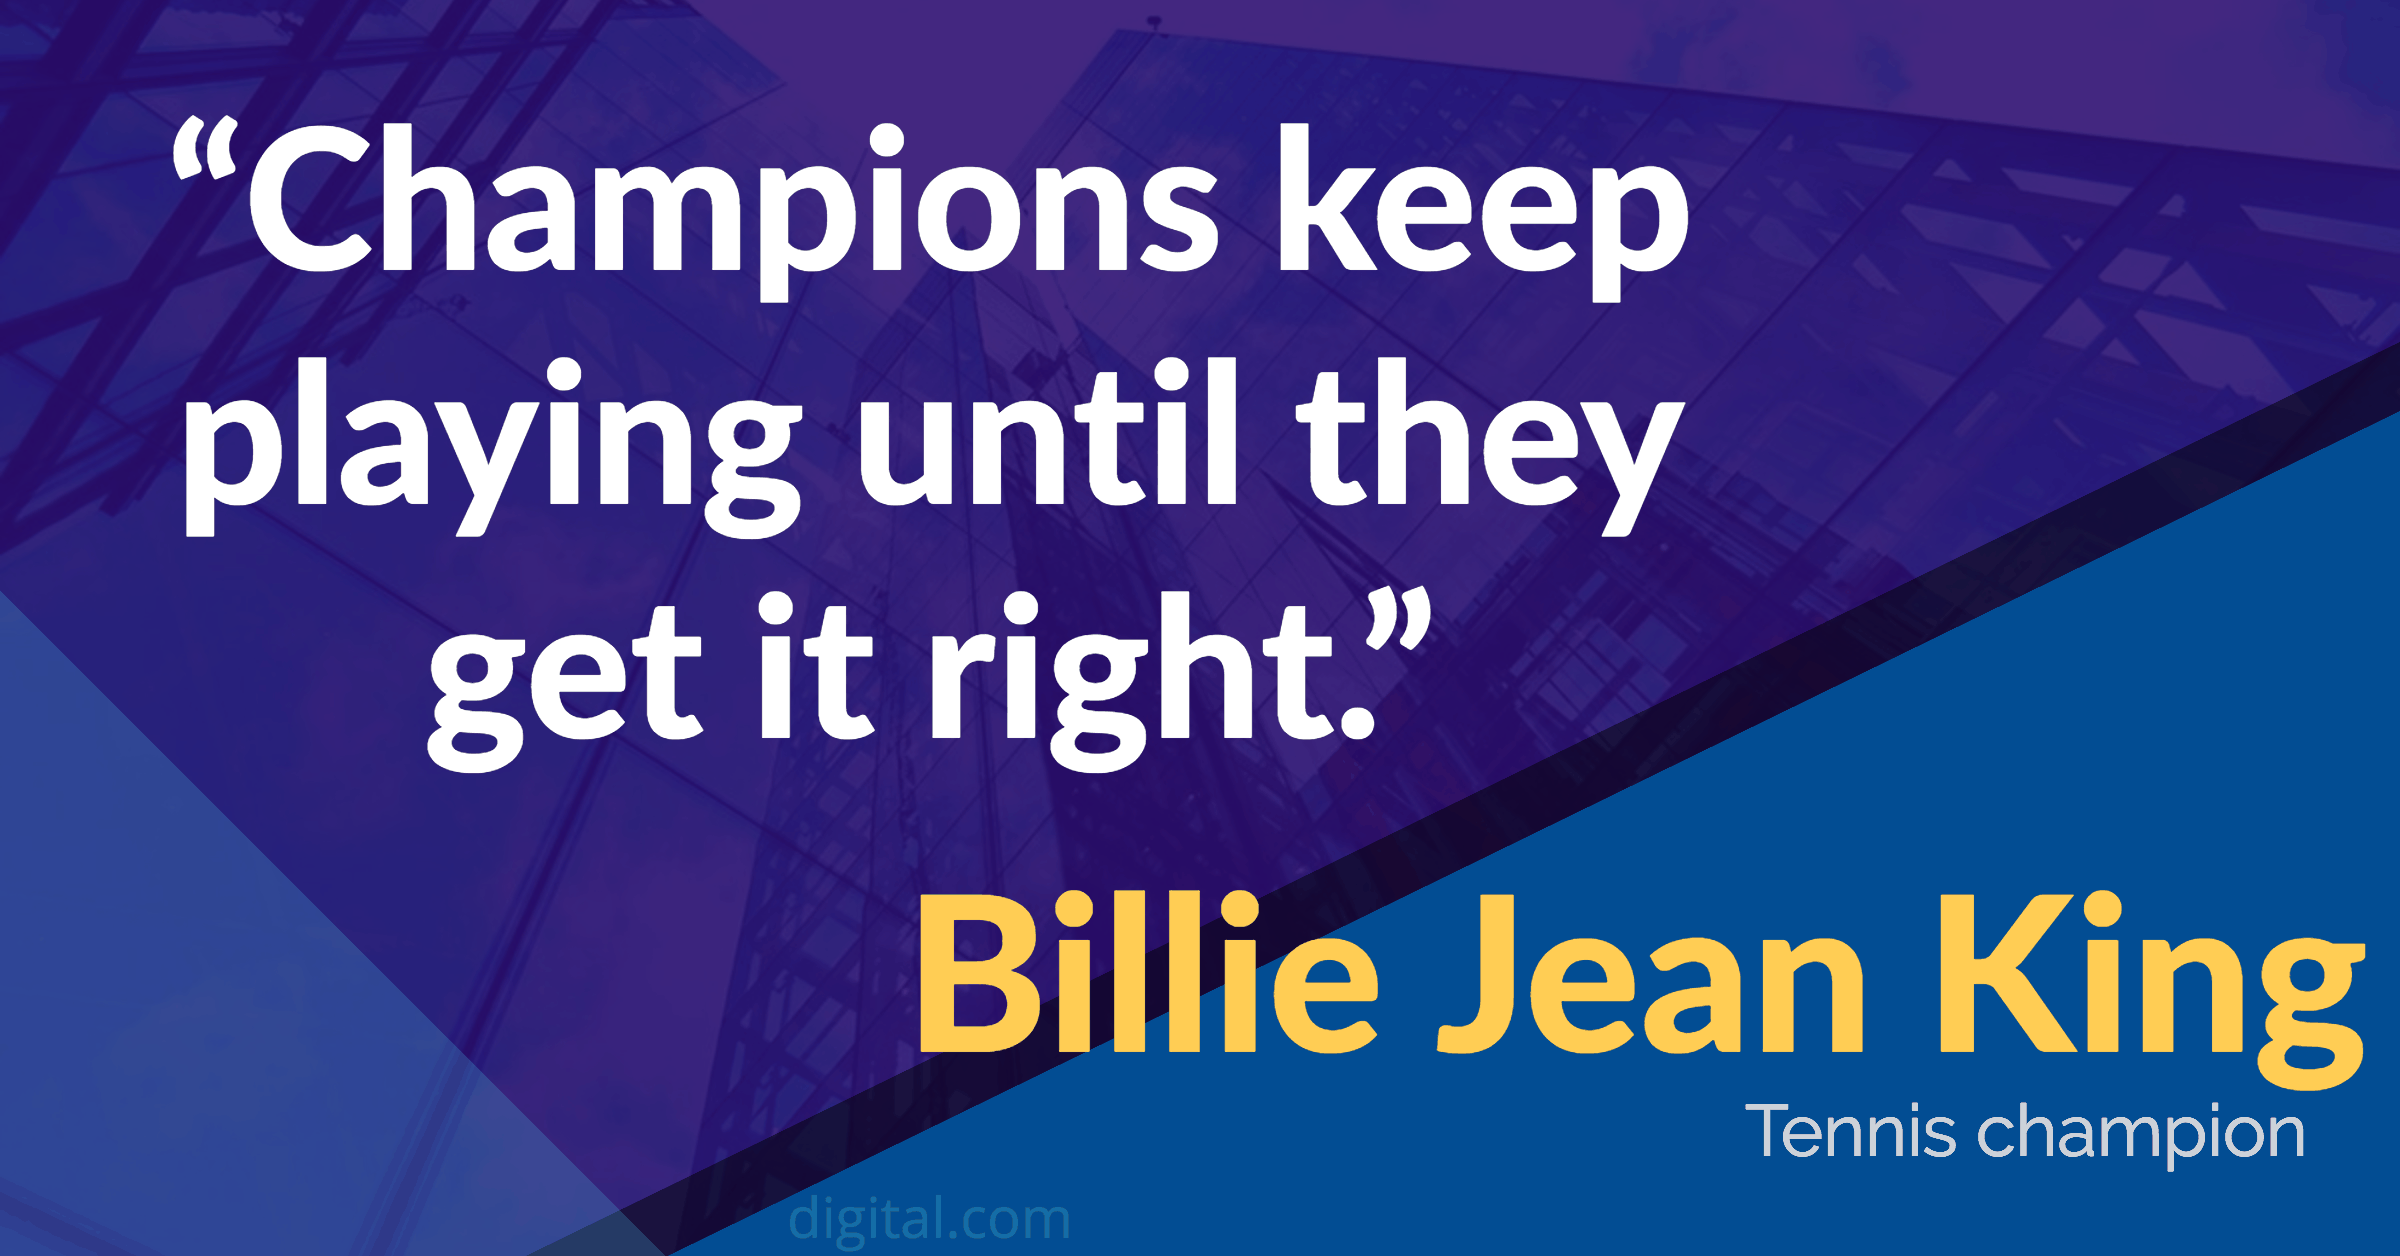 billie jean king leadership quote